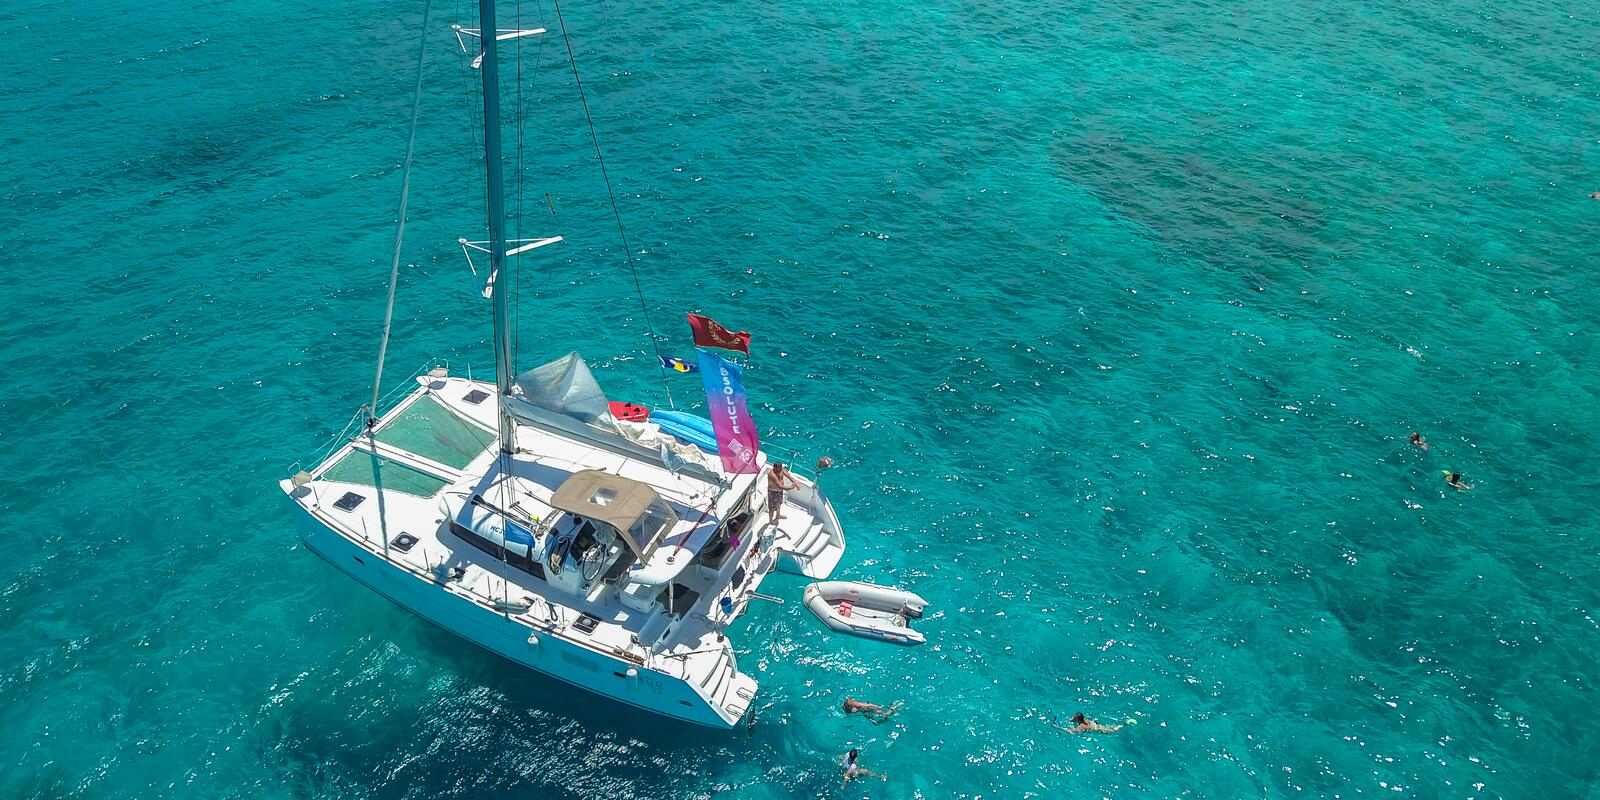 Combine relaxation and comfort by discovering Corsica on a catamaran